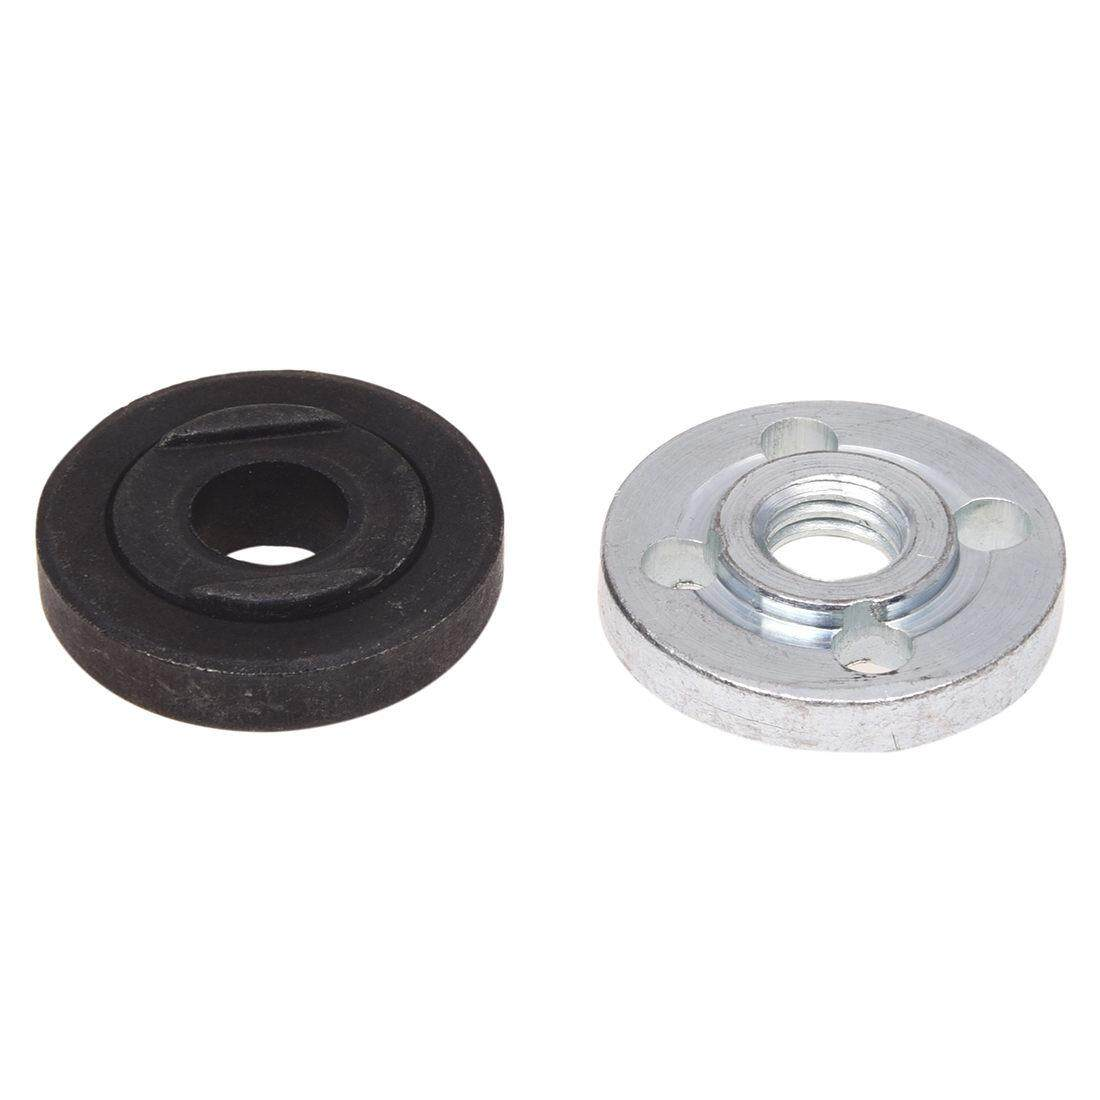 2Pcs Replacement Angle Grinder Part Inner Outer Flange for Makita 9523